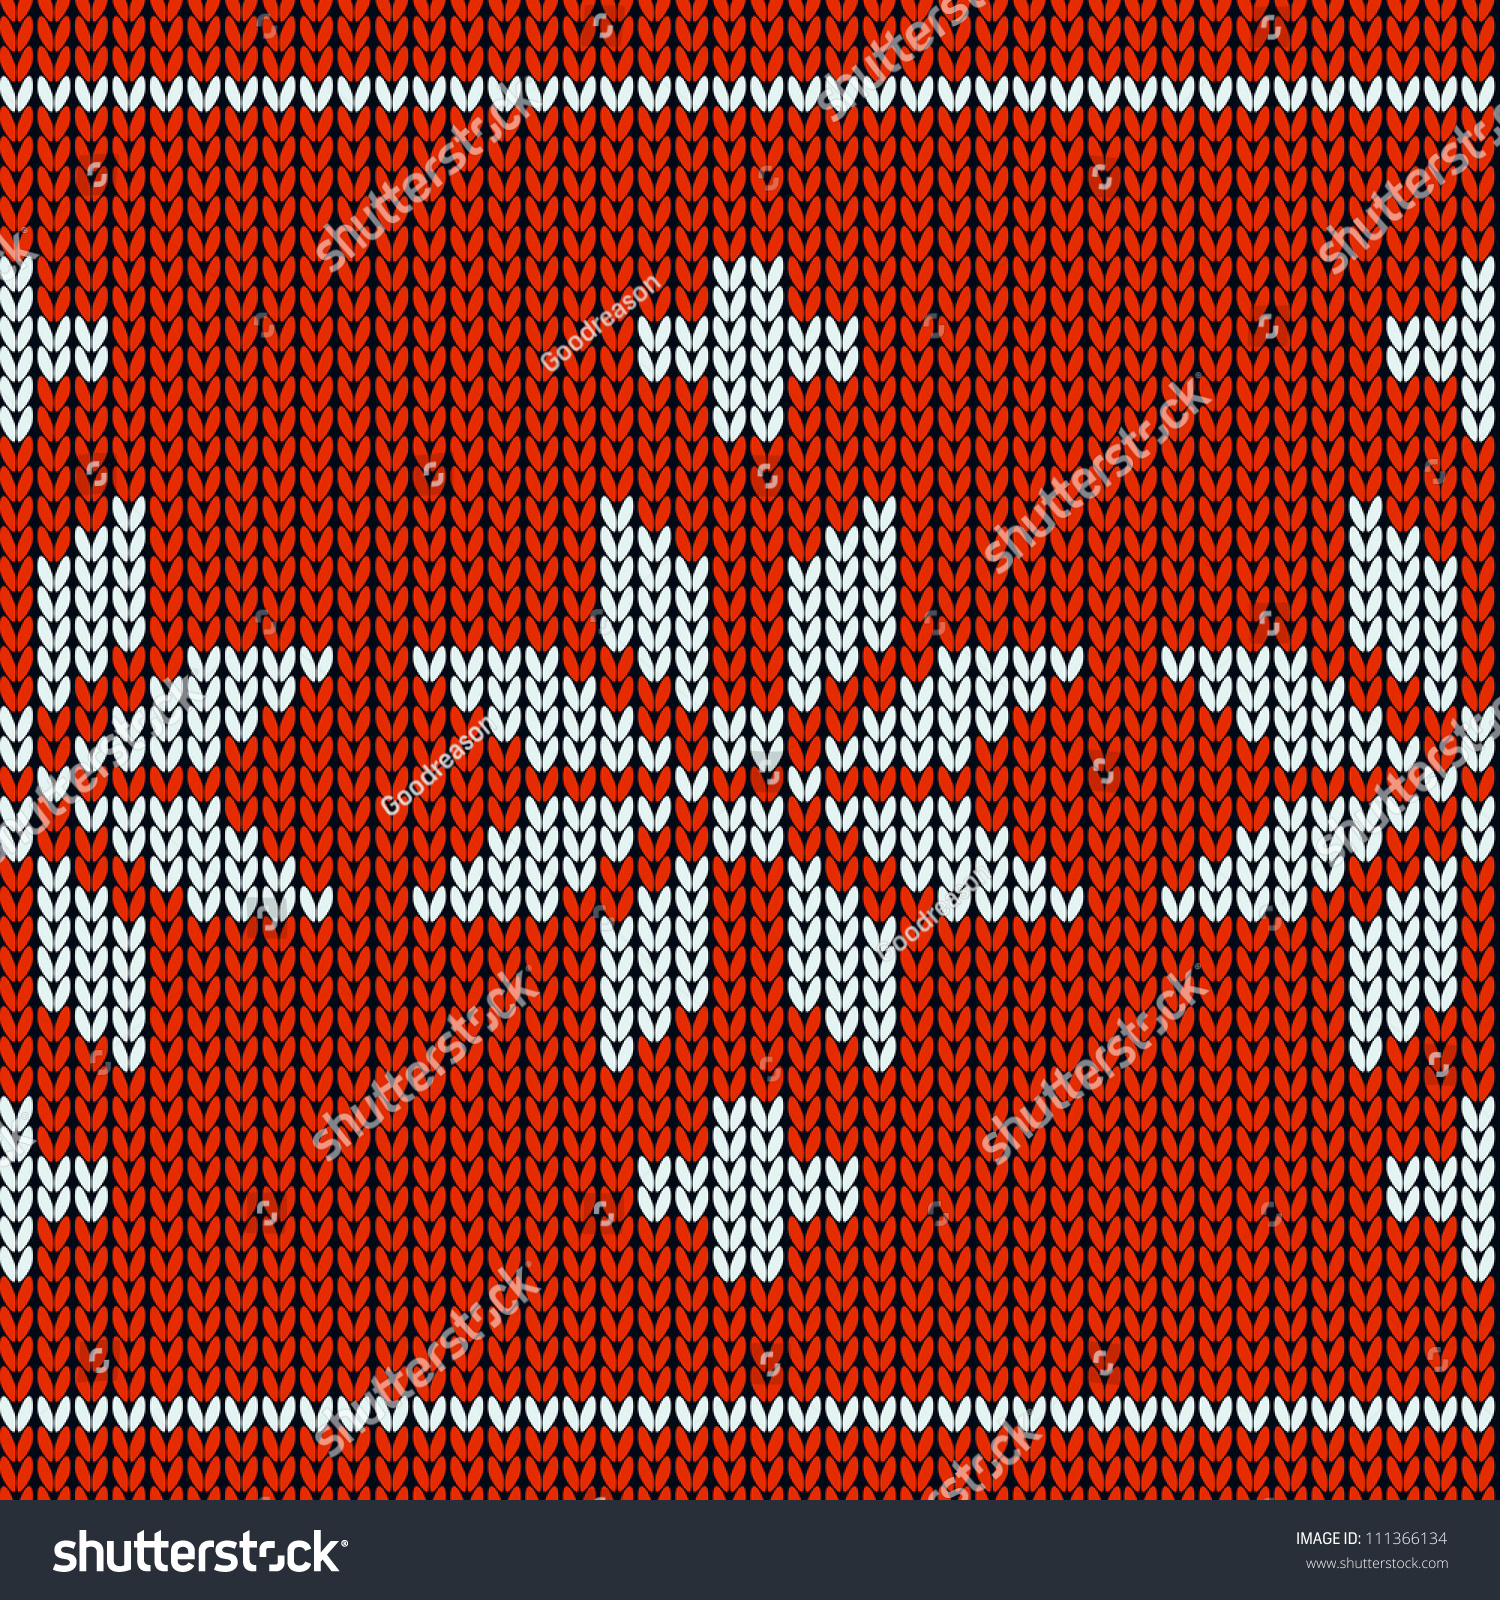 Snowflake Jumper Knitting Pattern : Knitting Pattern With A Snowflakes Stock Vector Illustration 111366134 : Shut...